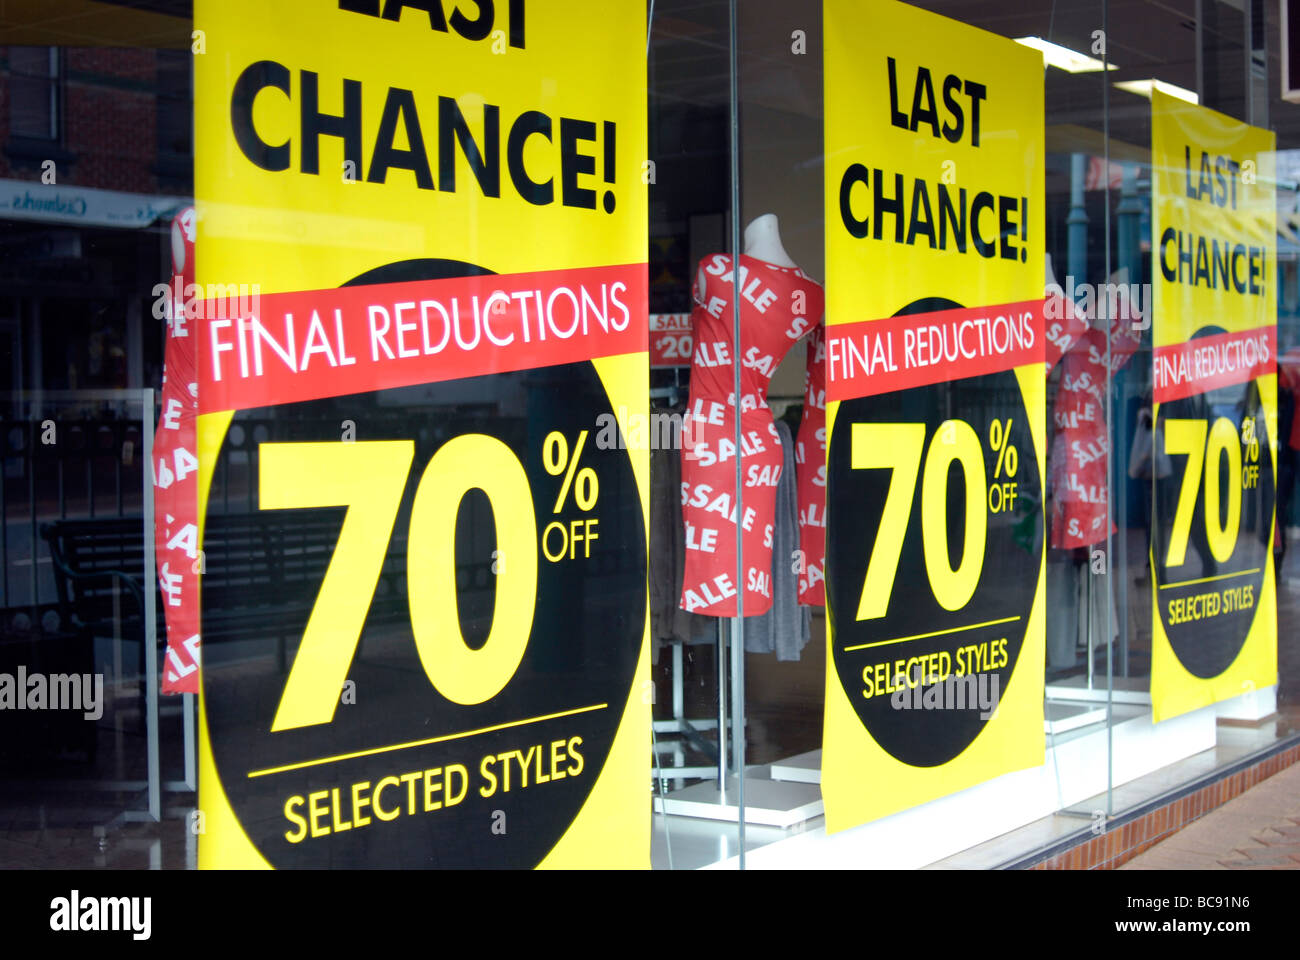 Sale sign in shop window - Stock Image